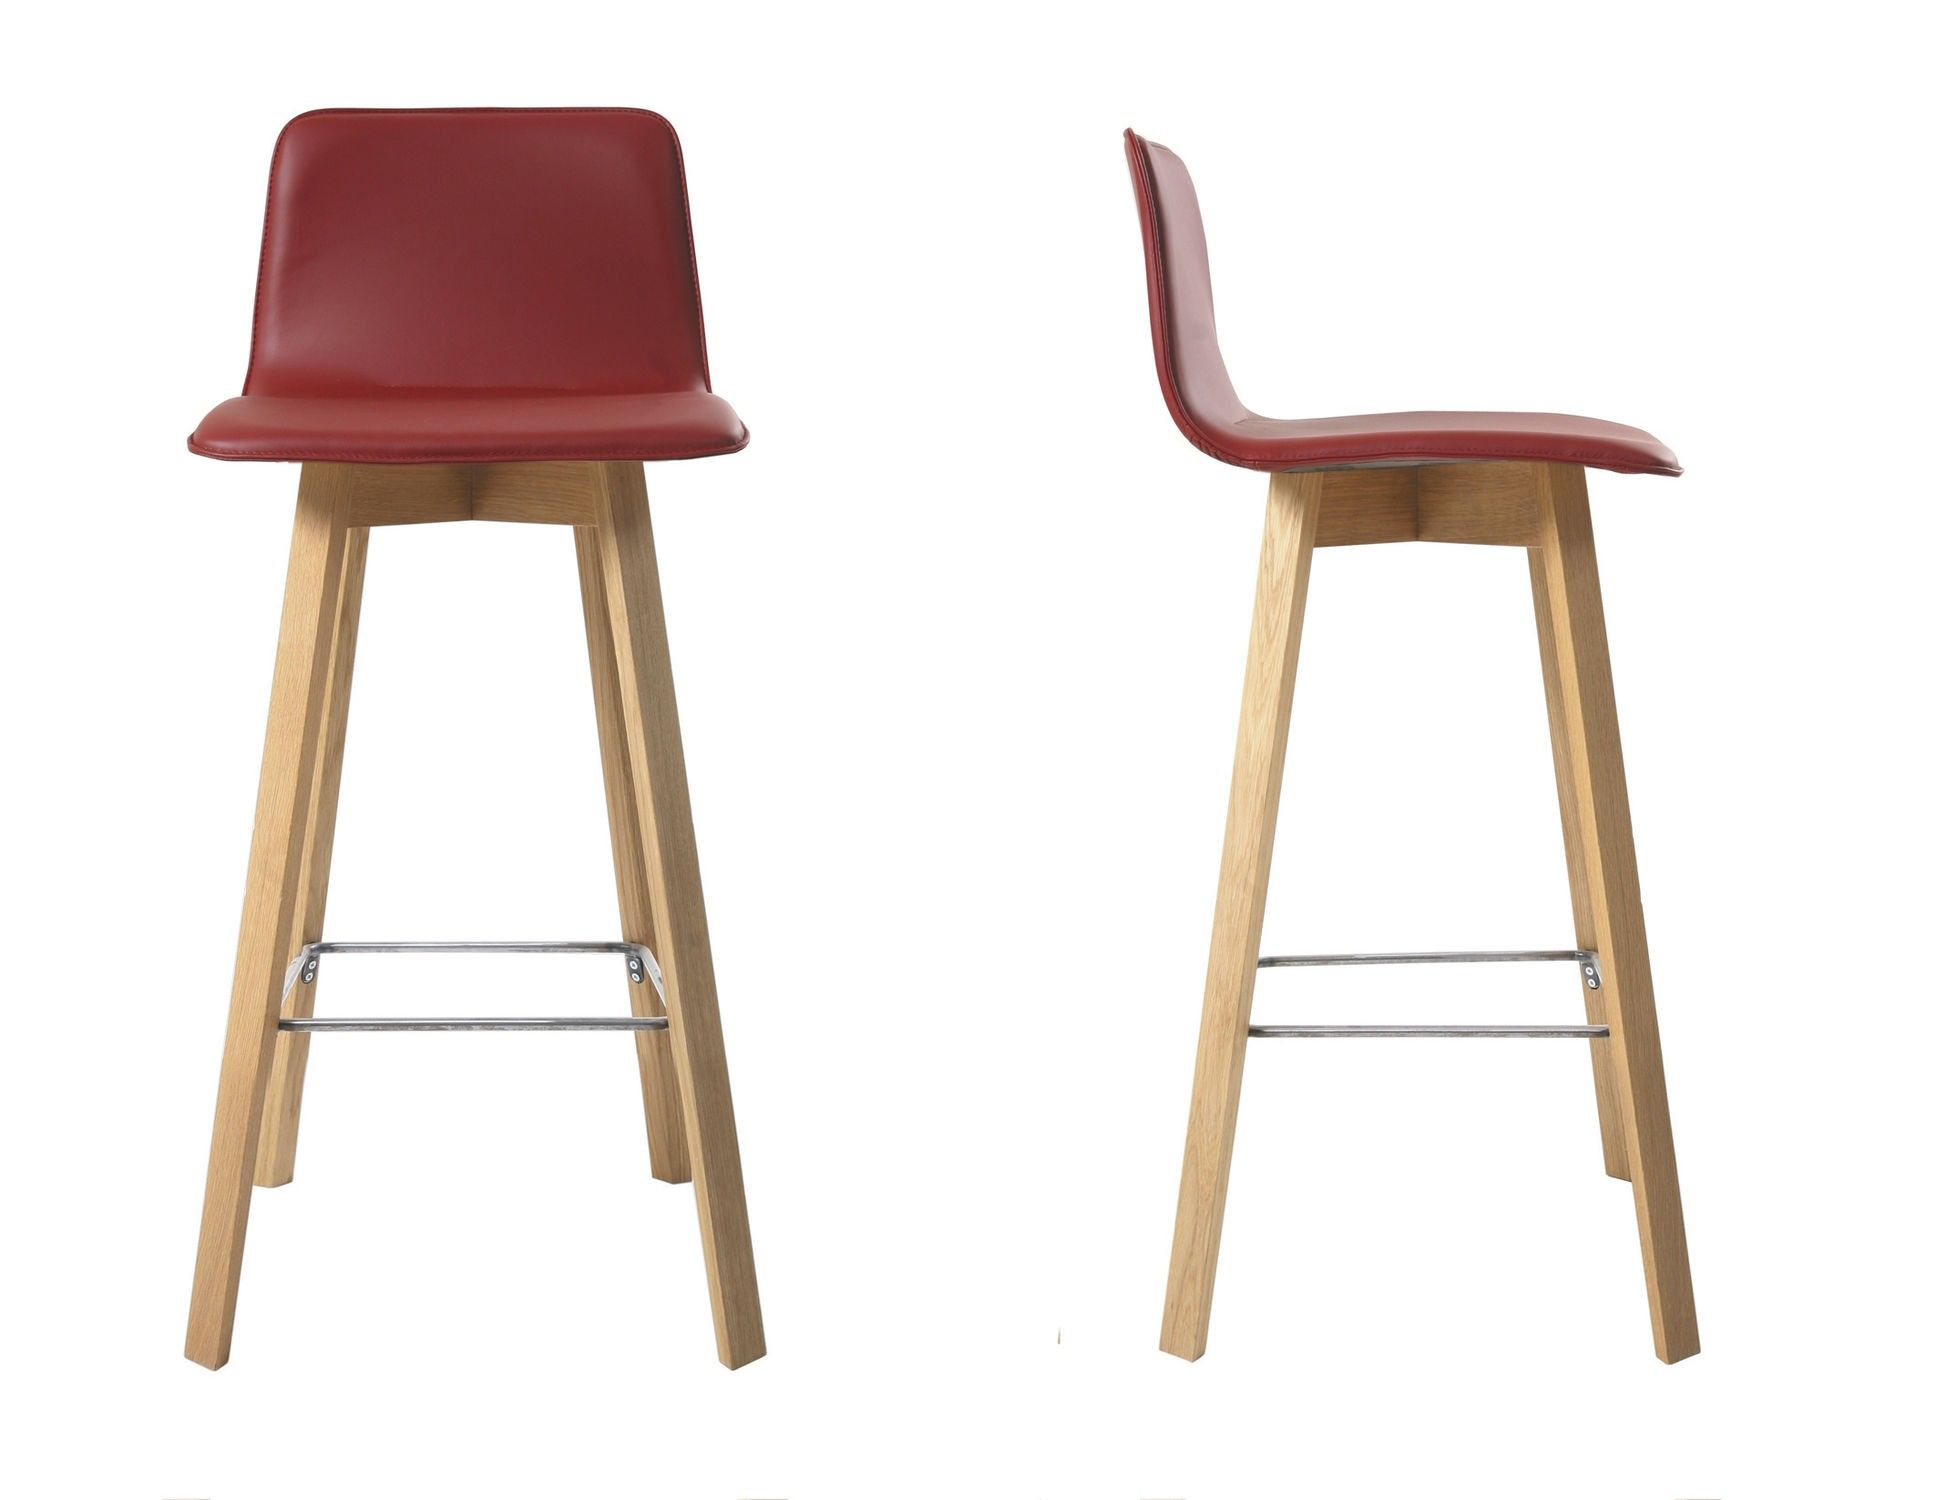 Kitchen Stools With Backs Contemporary Wooden Upholstered Maverick ...